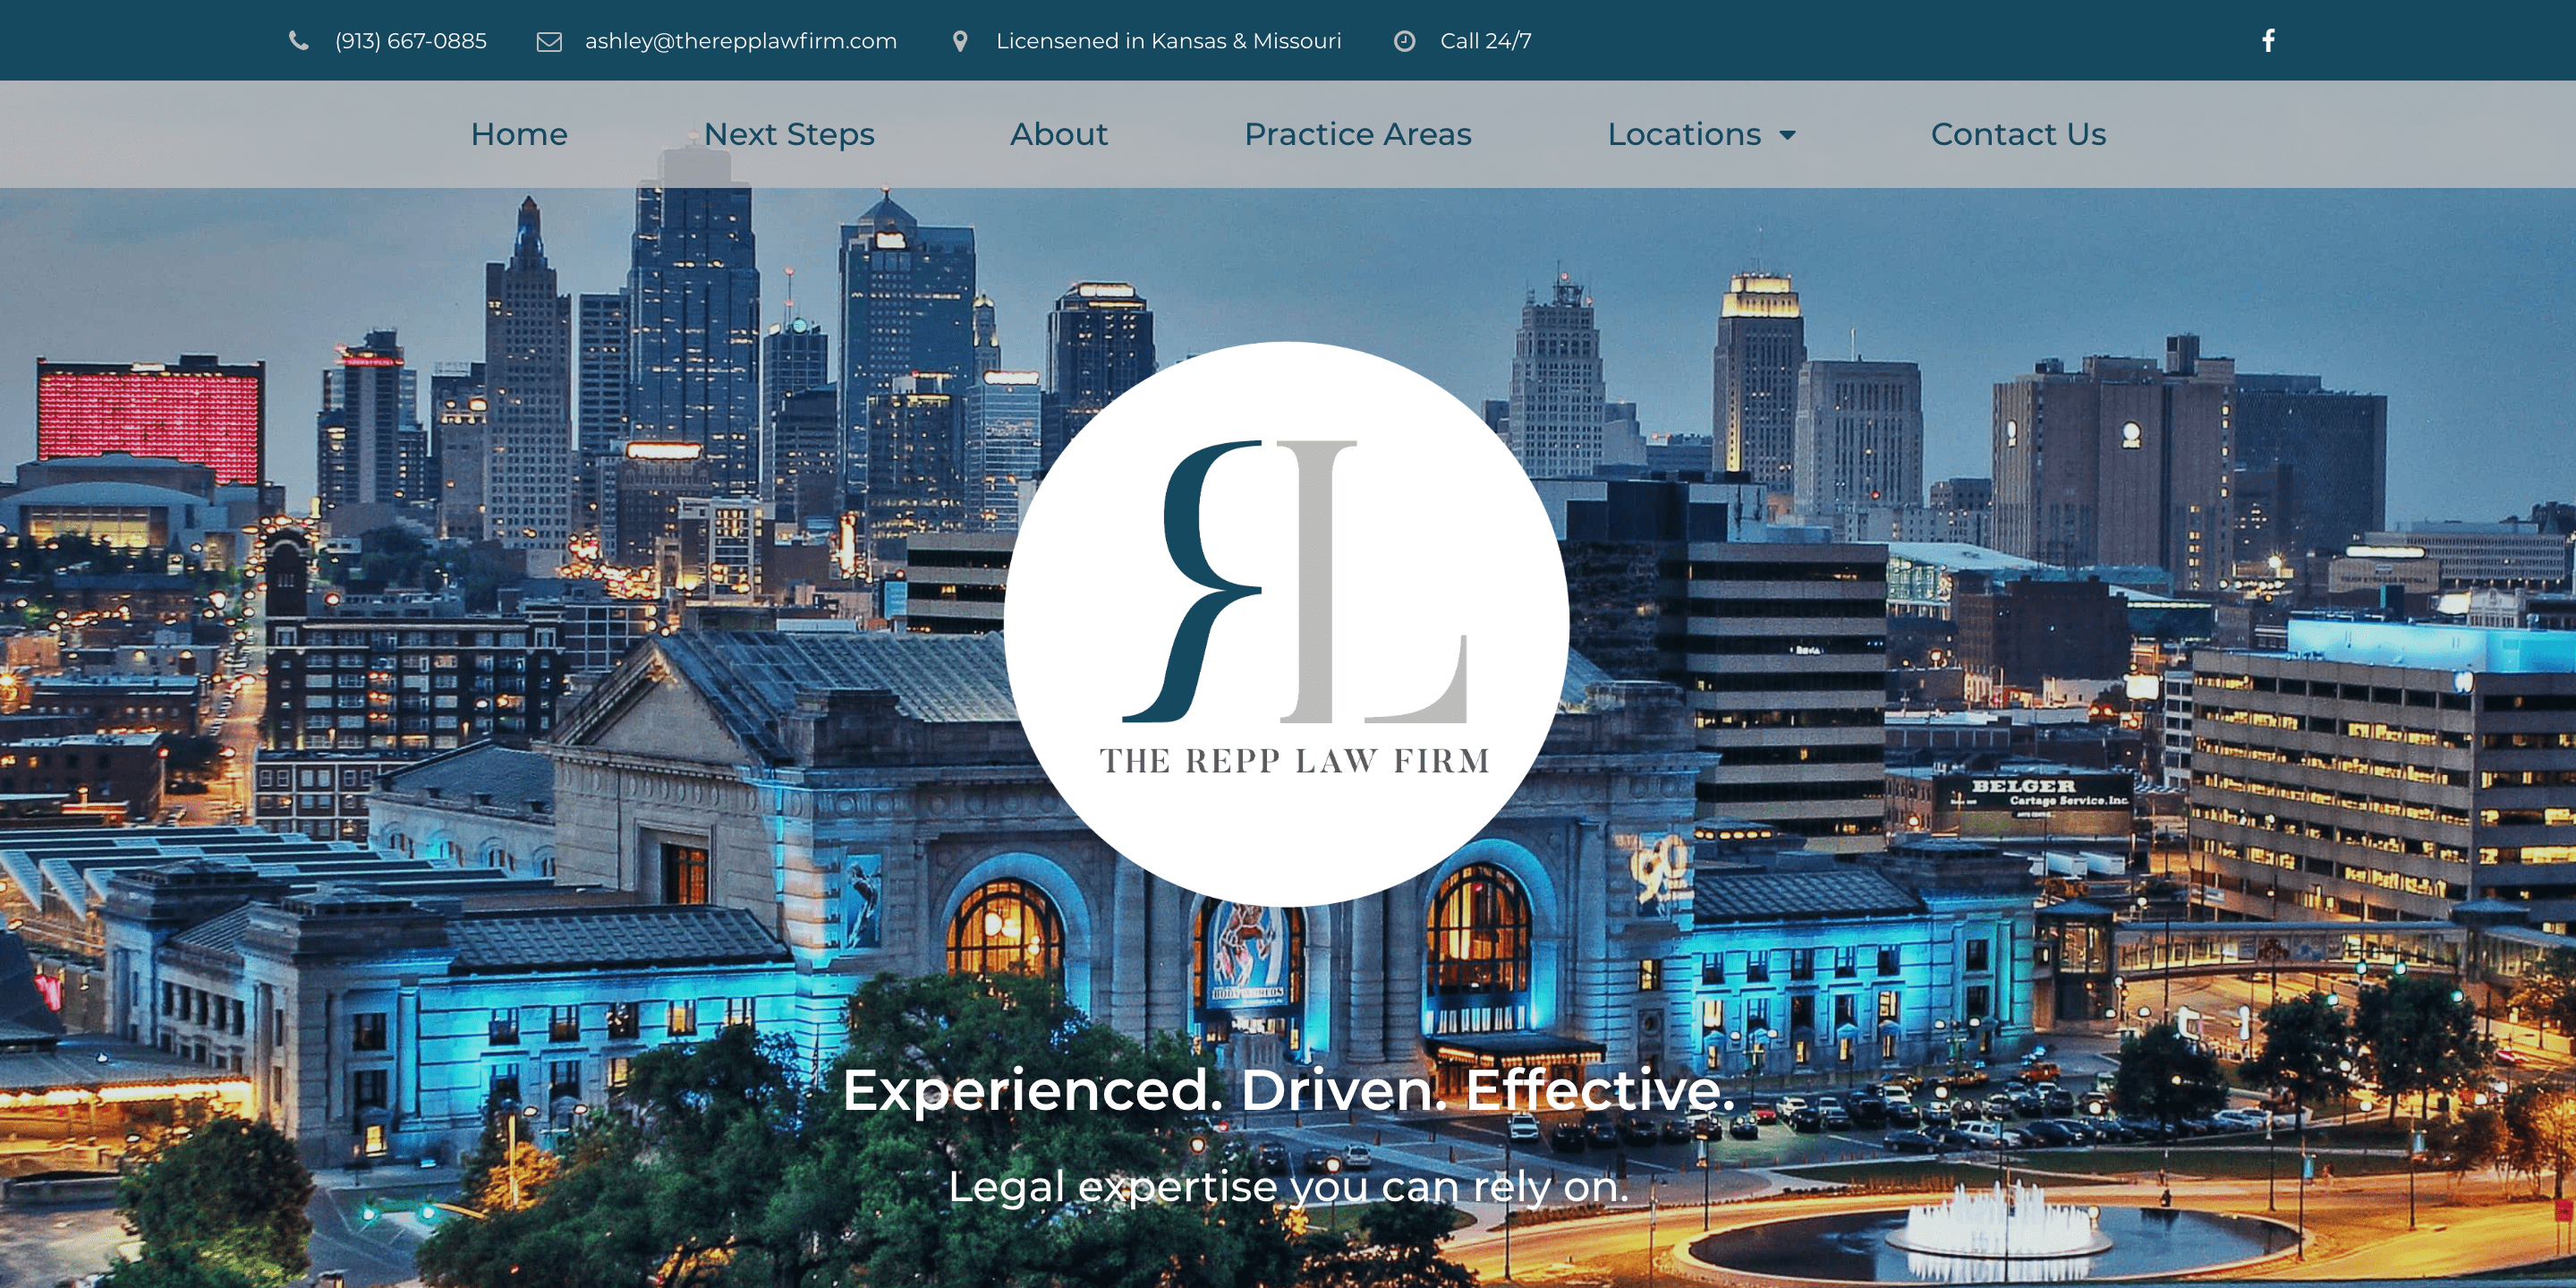 The Repp Law Firm Website